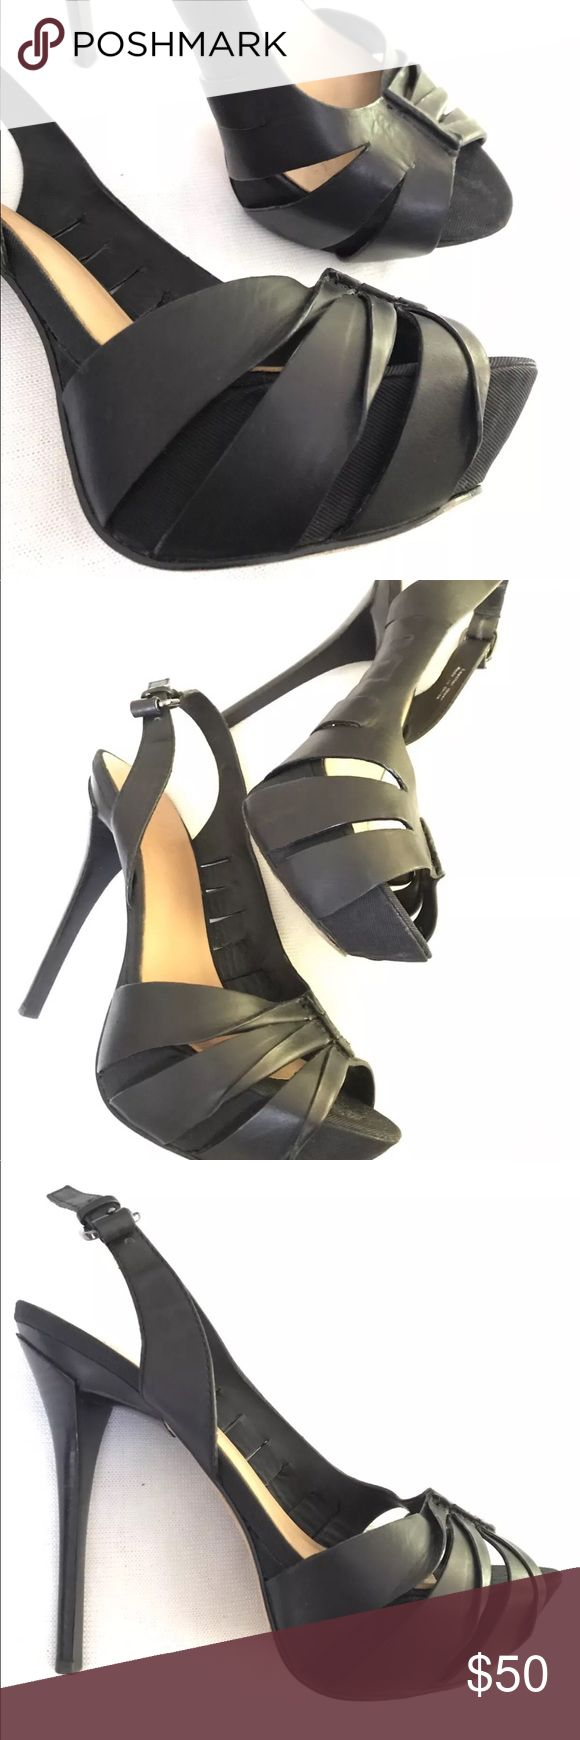 L.A.M.B.Gwen Stefan peep toe platform slingback Peep toe platform stiletto Slingbacks. Grograin fabric covered platform with leather. Great pre-owned condition. L.A.M.B. Shoes Platforms